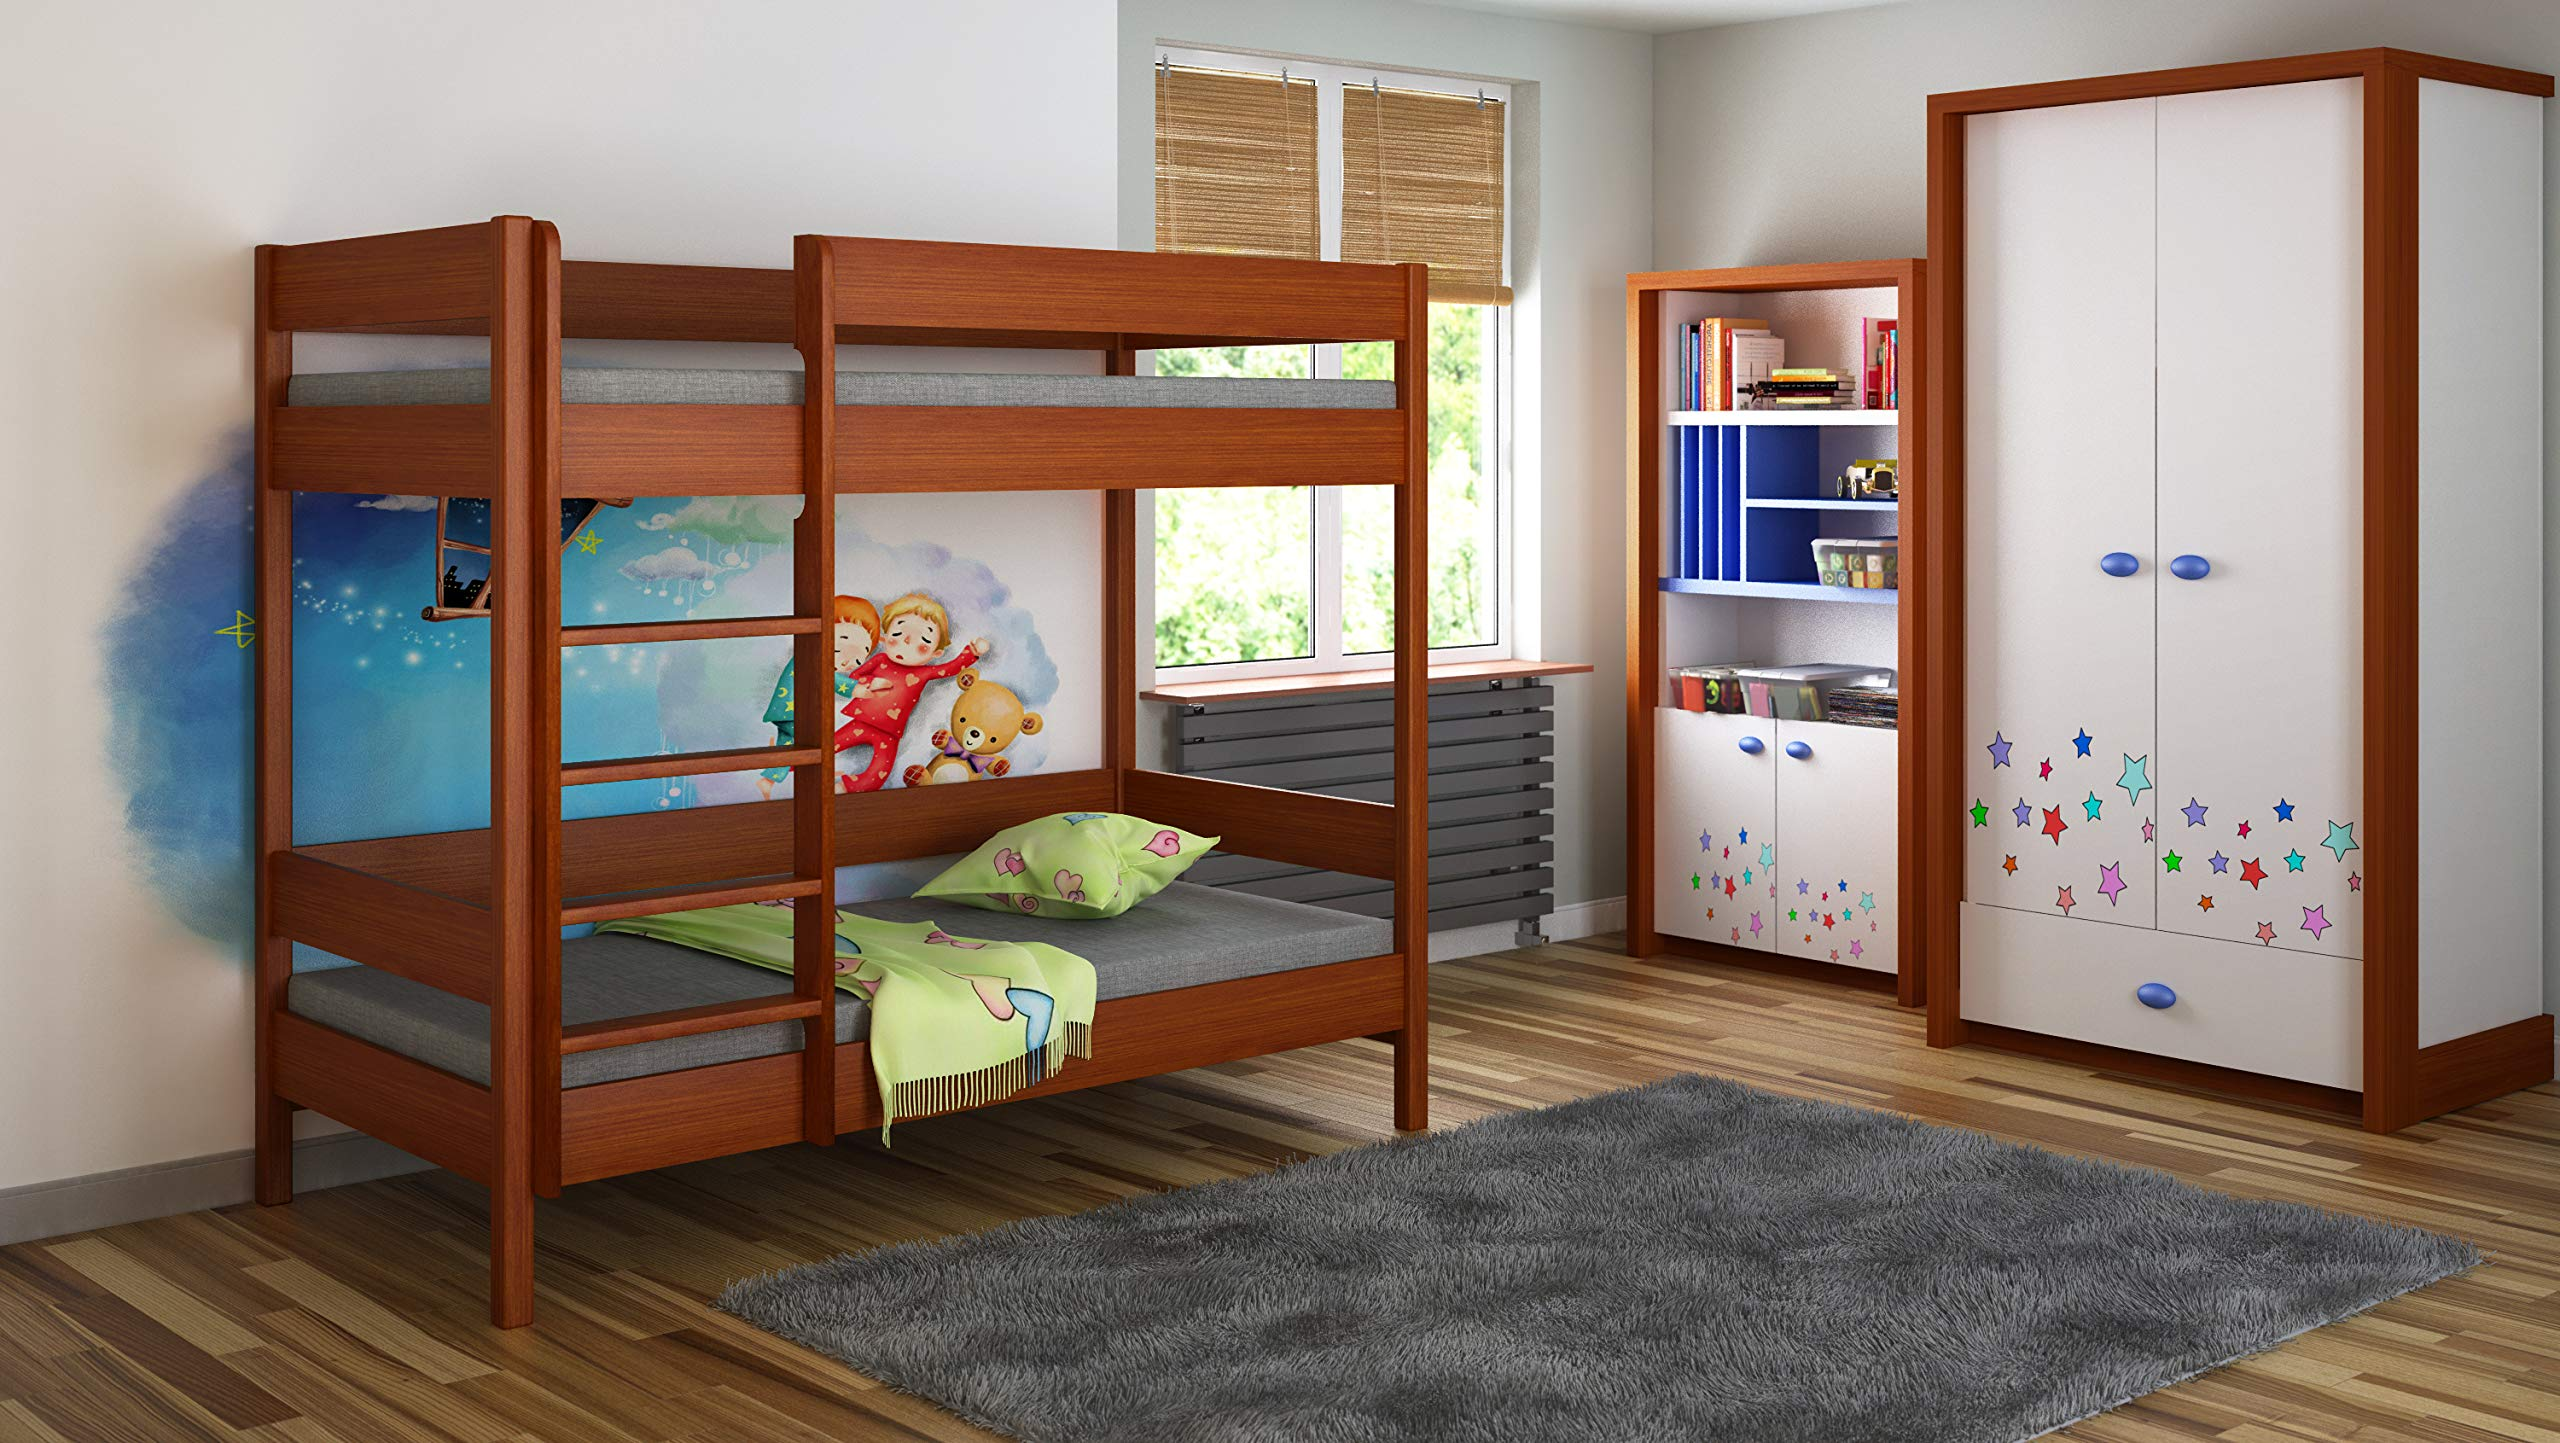 Children's Beds Home Bunk Beds - Kids Children Juniors Single with 2 Foam Mattress but No Drawers (140x70, Palisander) Children's Beds Home Bed with barriers internal dimensions: 140x70x160, 160x80x160, 180x80x160, 180x90x160, 200x90x160. External dimensions: 147x77x160, 167x87x160, 187x87x160, 187x97x160, 207x97x160 Bunk Bed with access from the - Front (D-1), Universal bed entrance - left or right side. 2